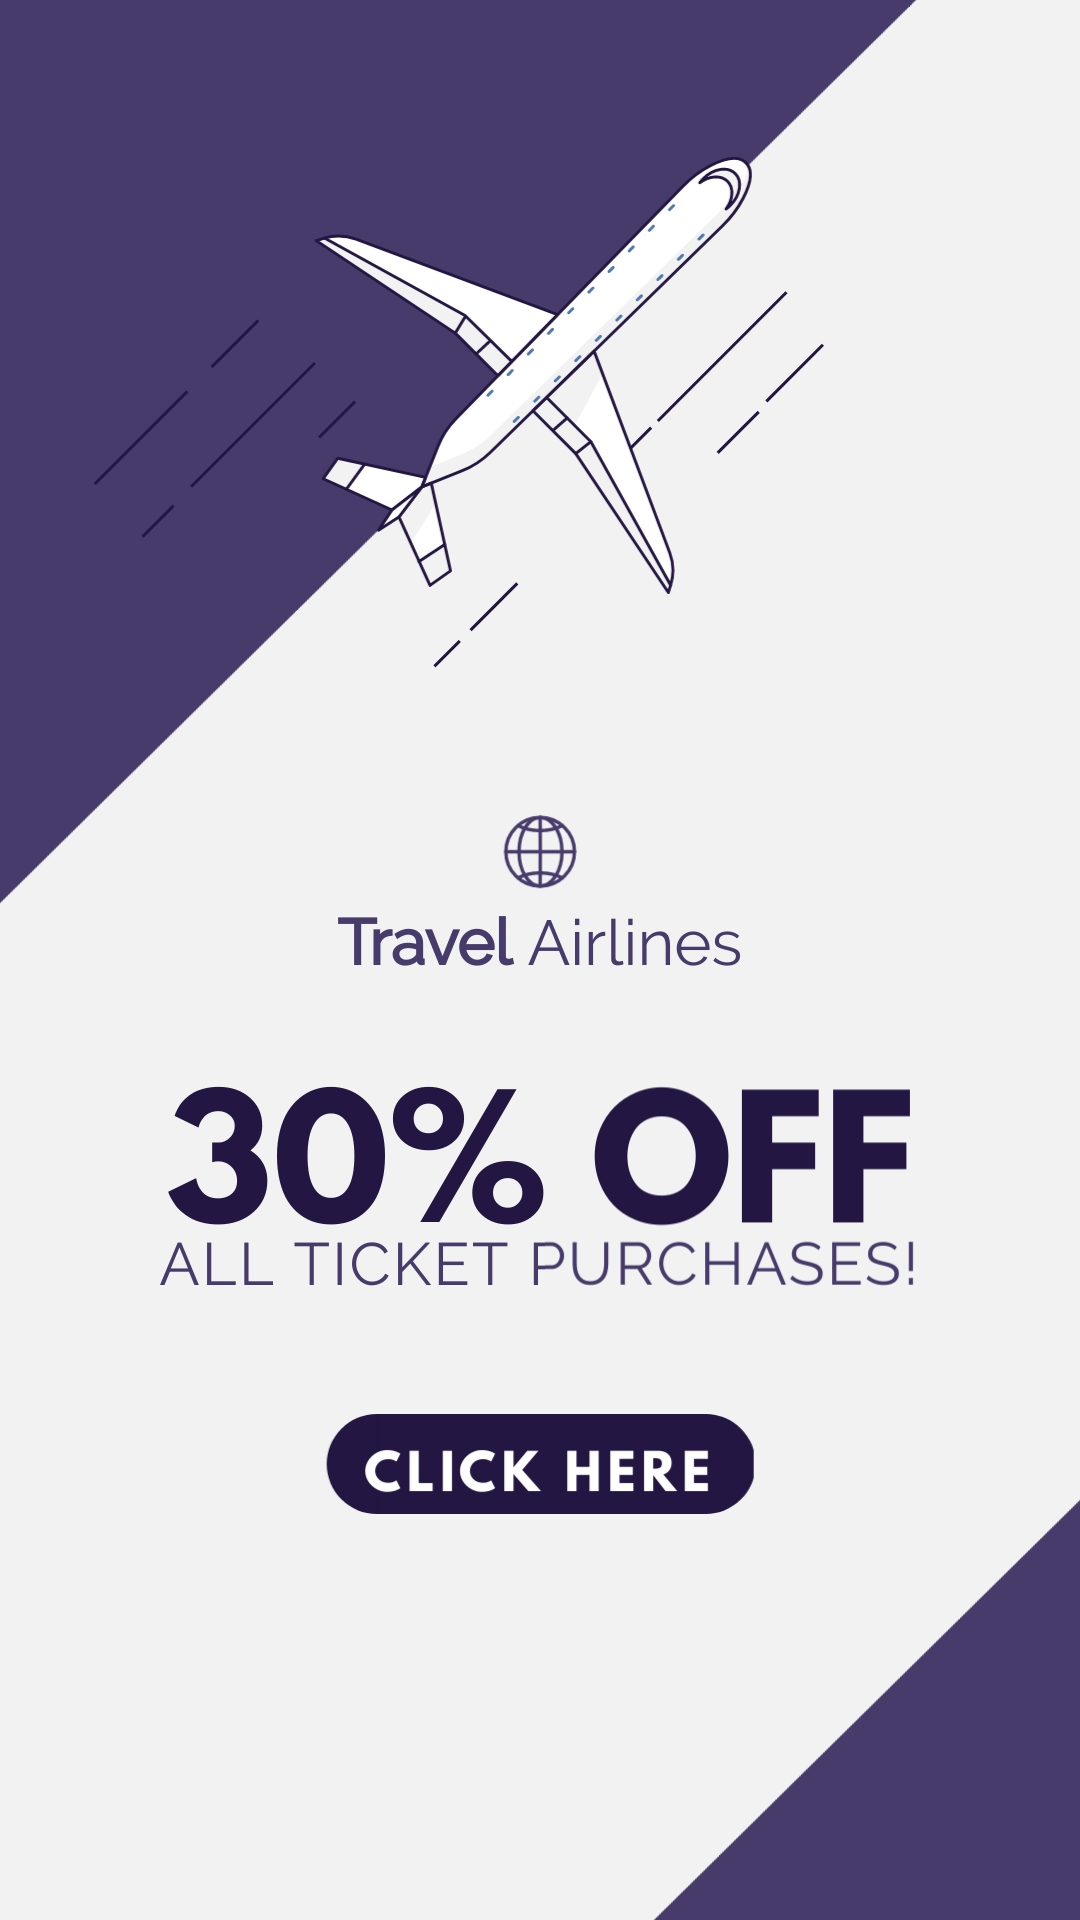 Travel Airlines Vertical Template